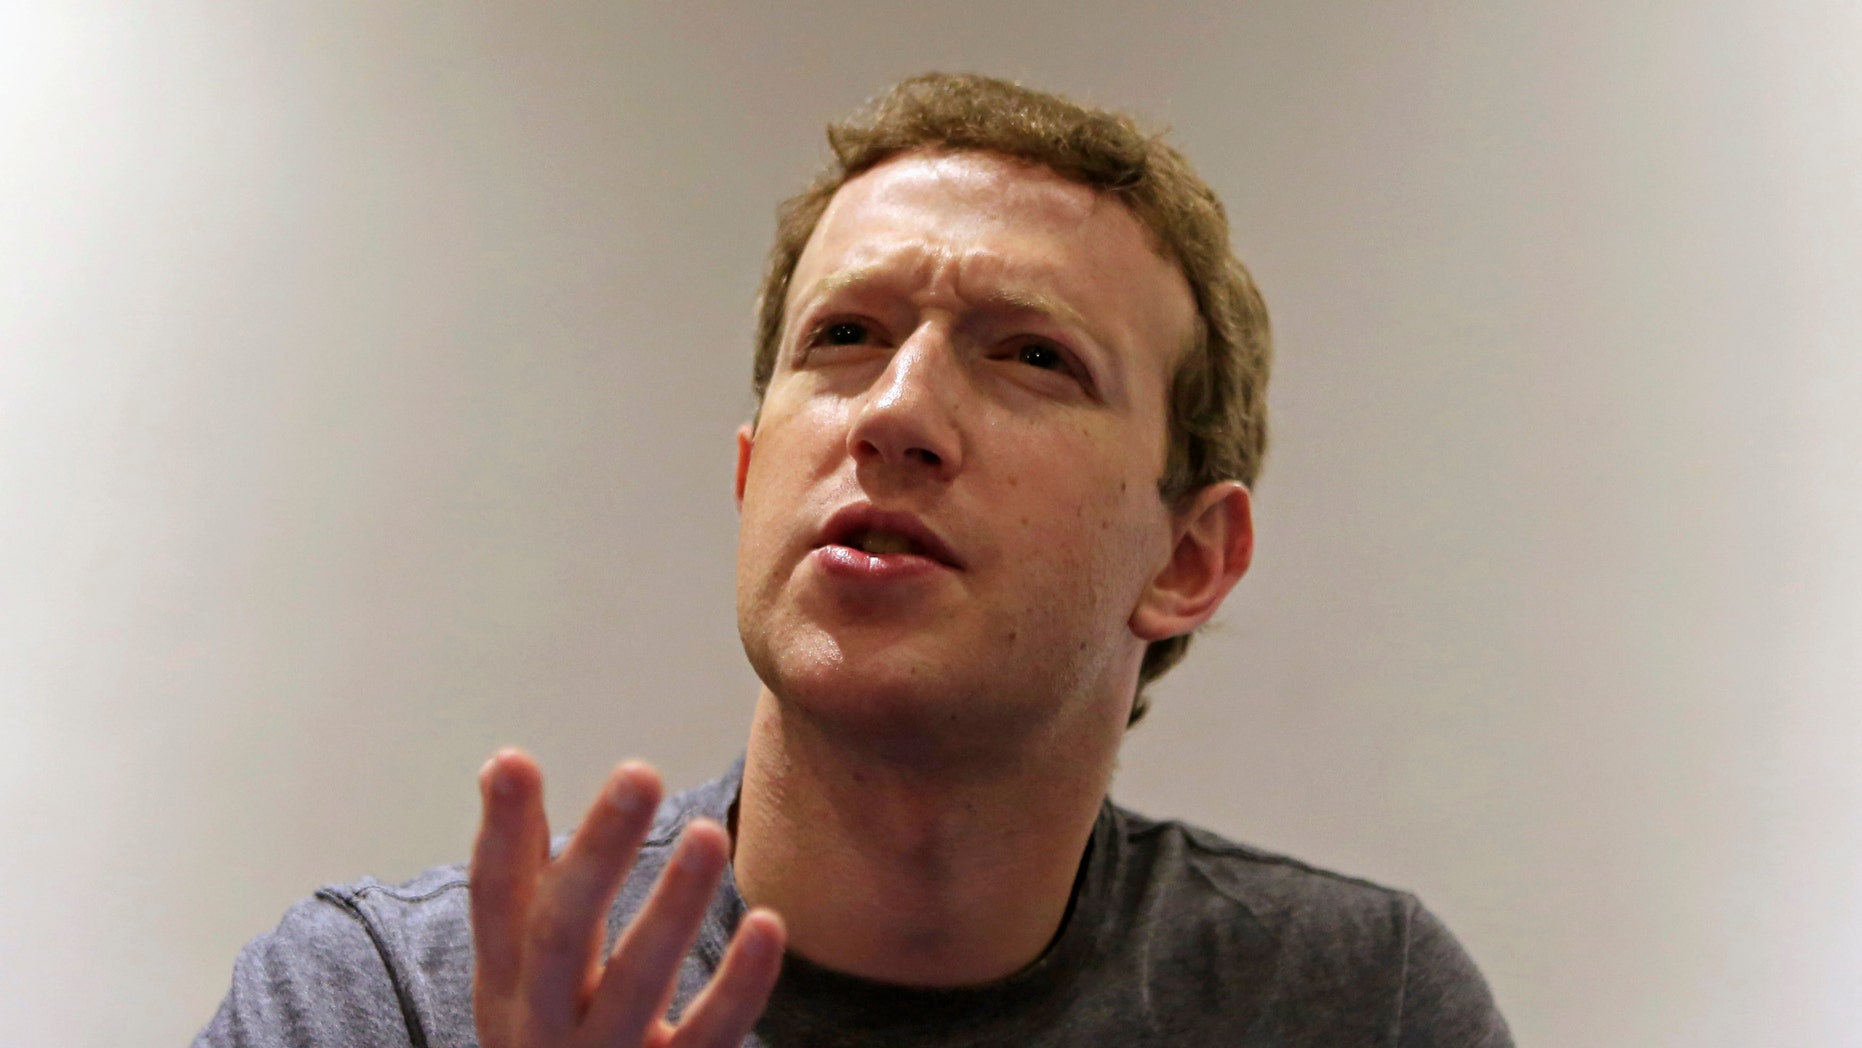 File photo - President, founder and CEO of Facebook Mark Zuckerberg speaks during a Reuters interview at the University of Bogota January 14, 2015.